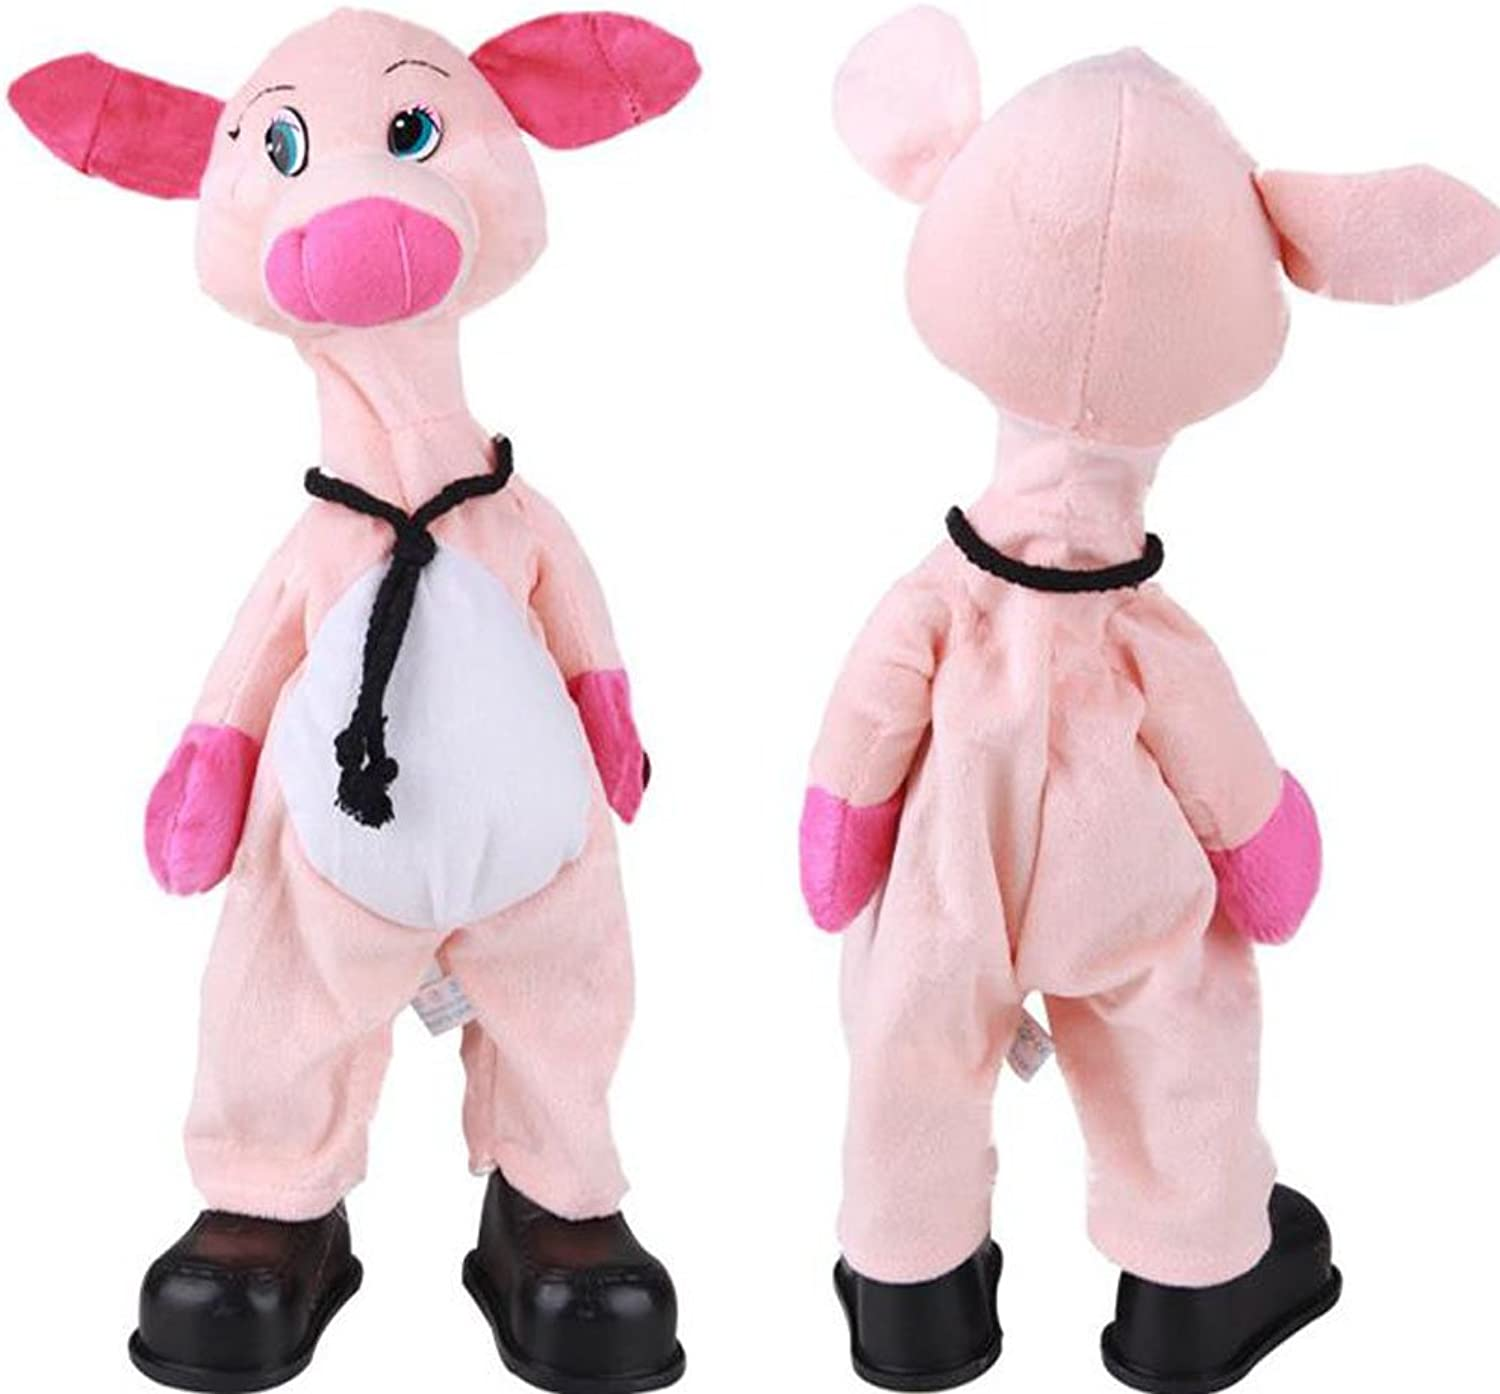 Funny Musical Dancing Electronic Stuffed Pig Bobbleheads Practical Jokes Toys